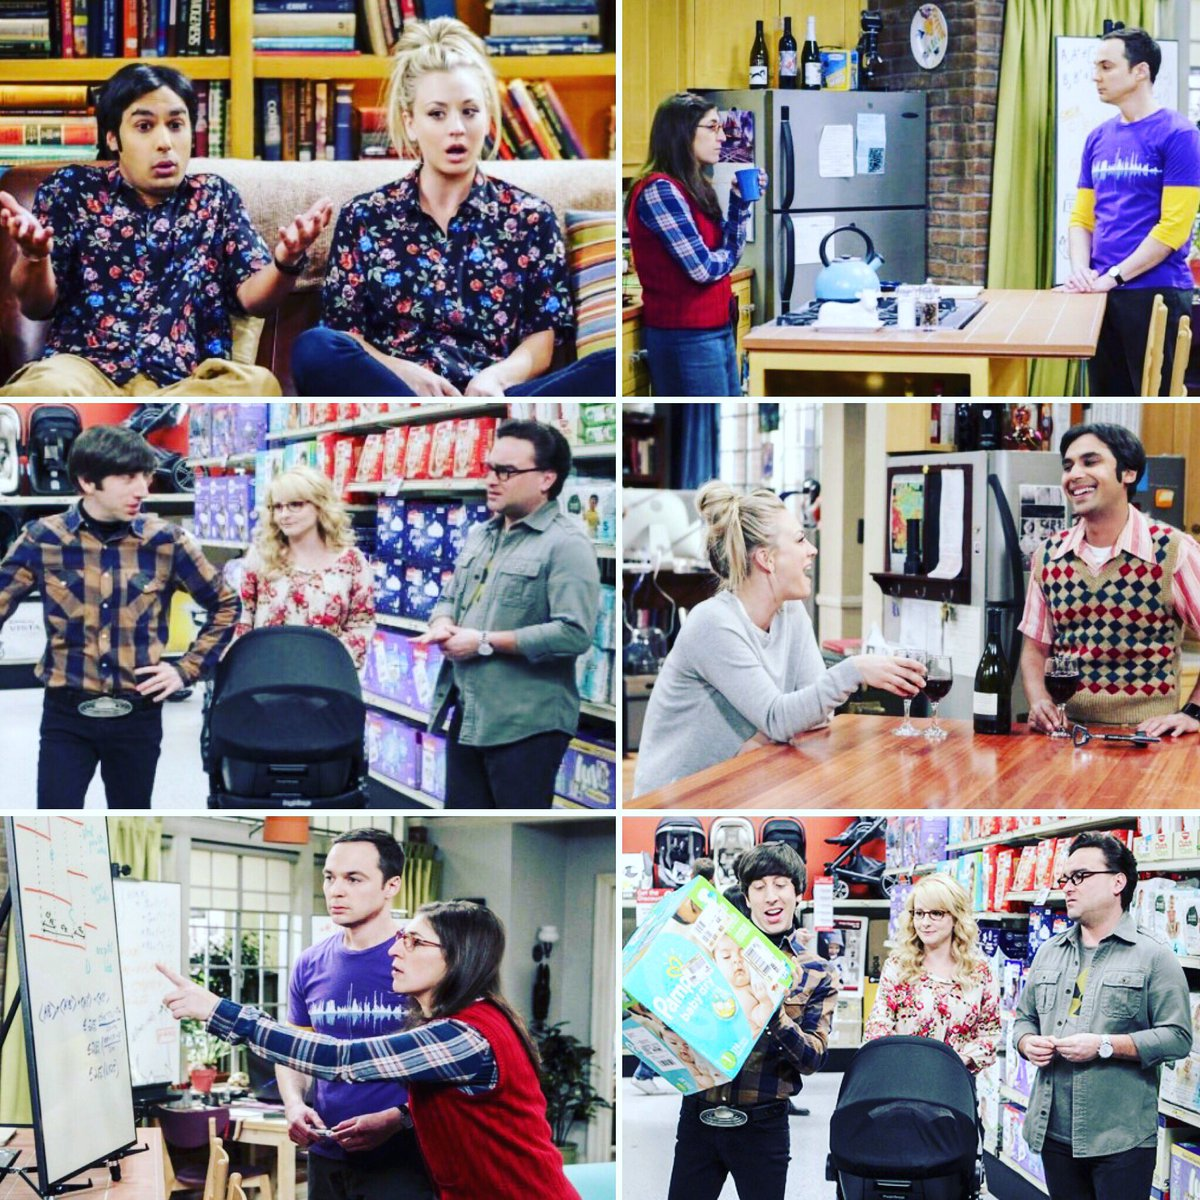 If you wanna get your laughs on - there's an awesome new @bigbangtheory tonight!!! https://t.co/e61i7UWPf8